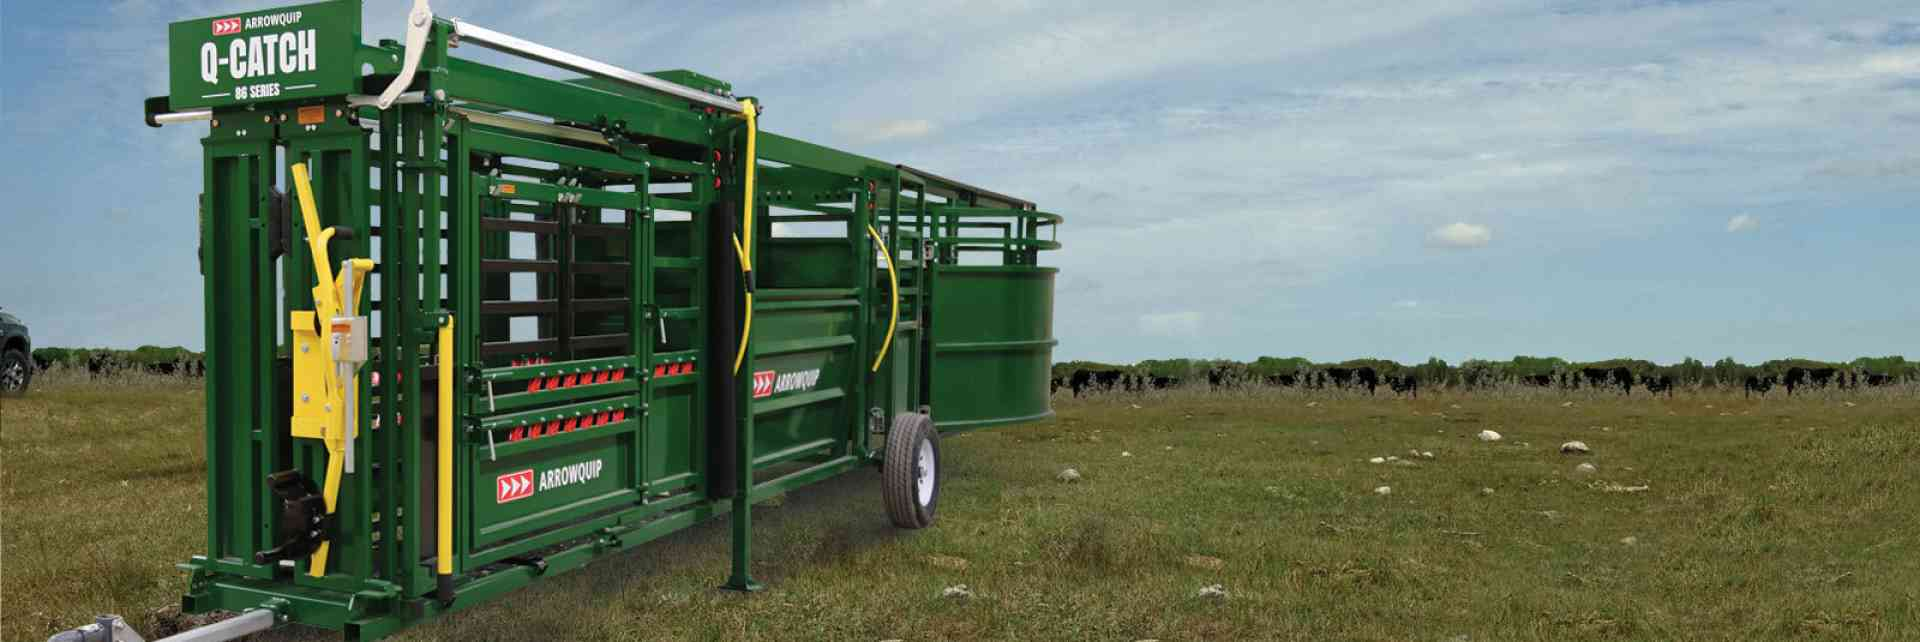 Portable Q-Catch 86 Series Cattle Chute, Cattle Alley & Cattle Tub | Arrowquip Cattle Equipment